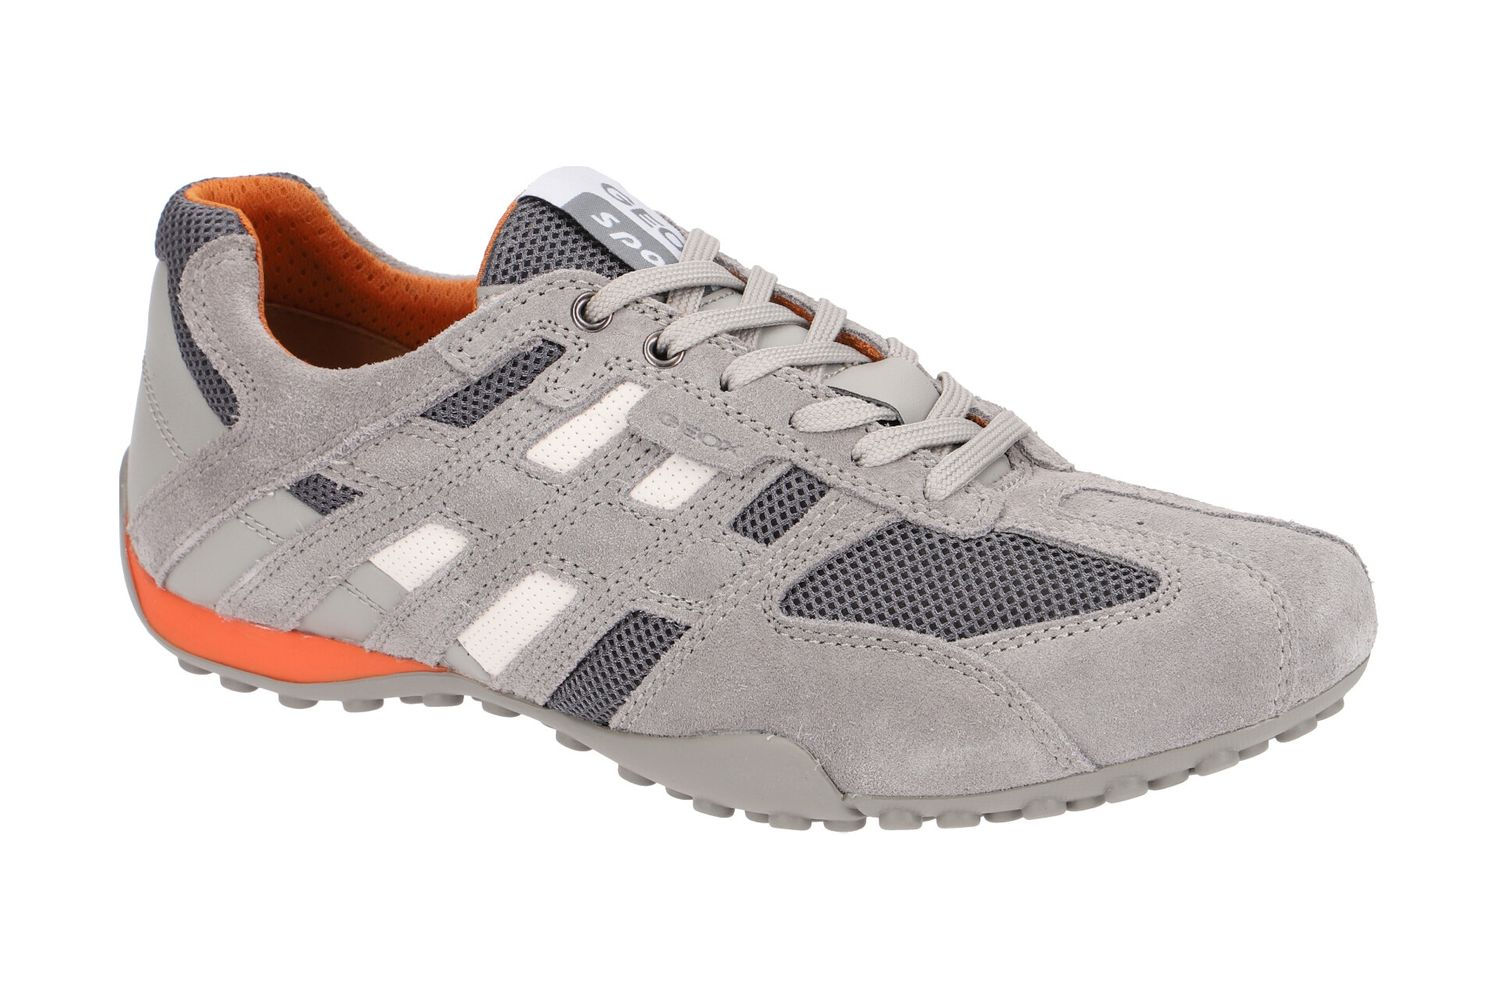 feinste Auswahl moderne Techniken 100% hohe Qualität Details about Geox Respira Sports Snake K Men Sneakers Low Shoes U4207K Grey